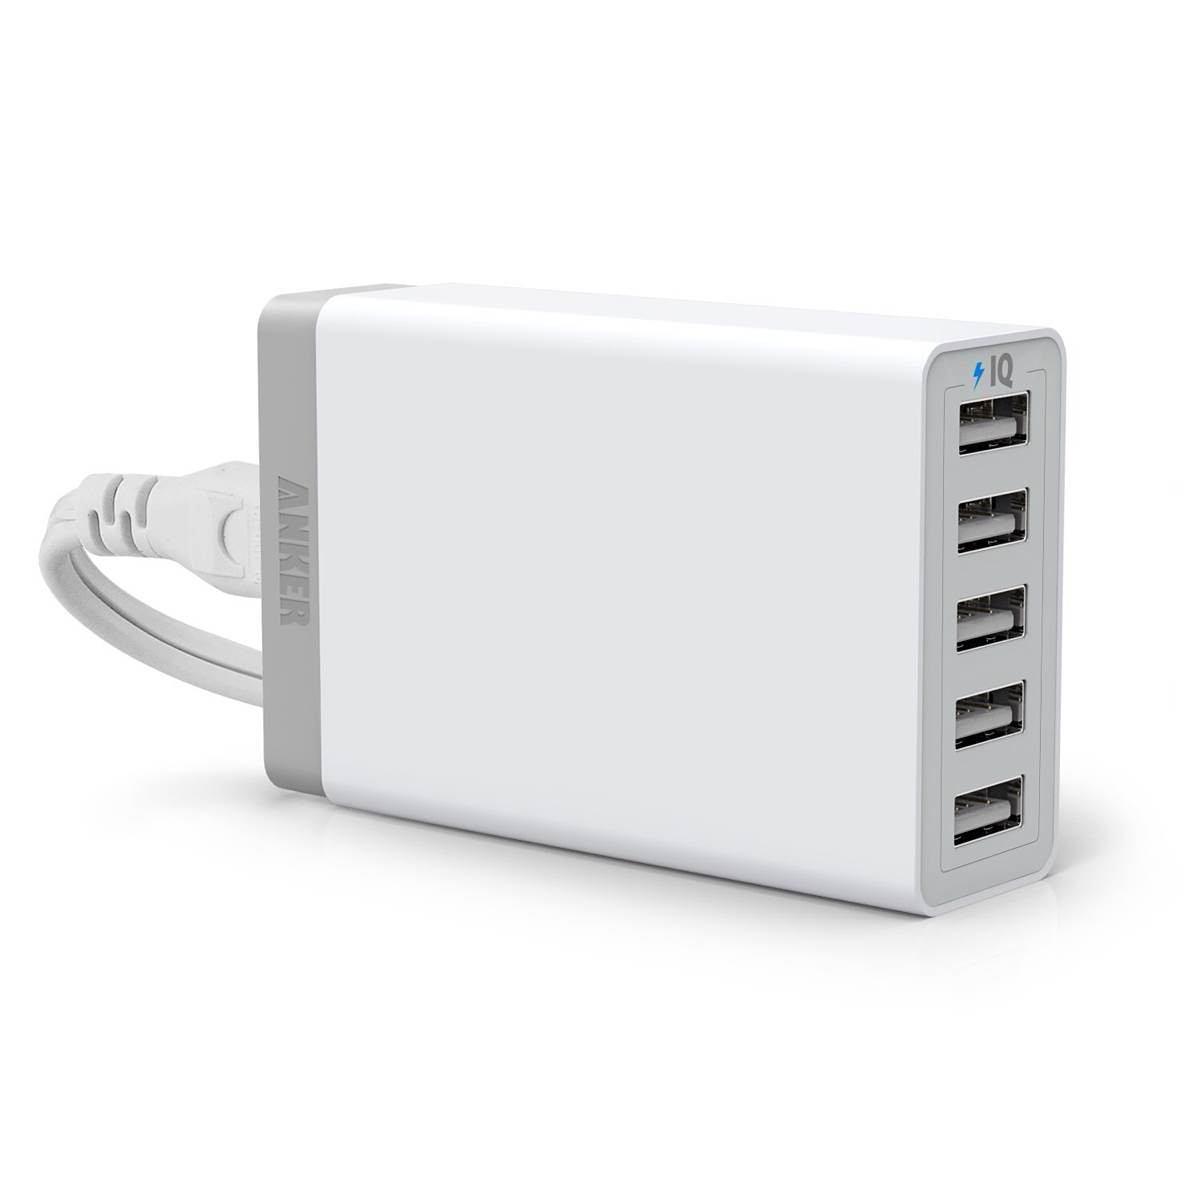 Anker's 5-Port USB charger. ($24)